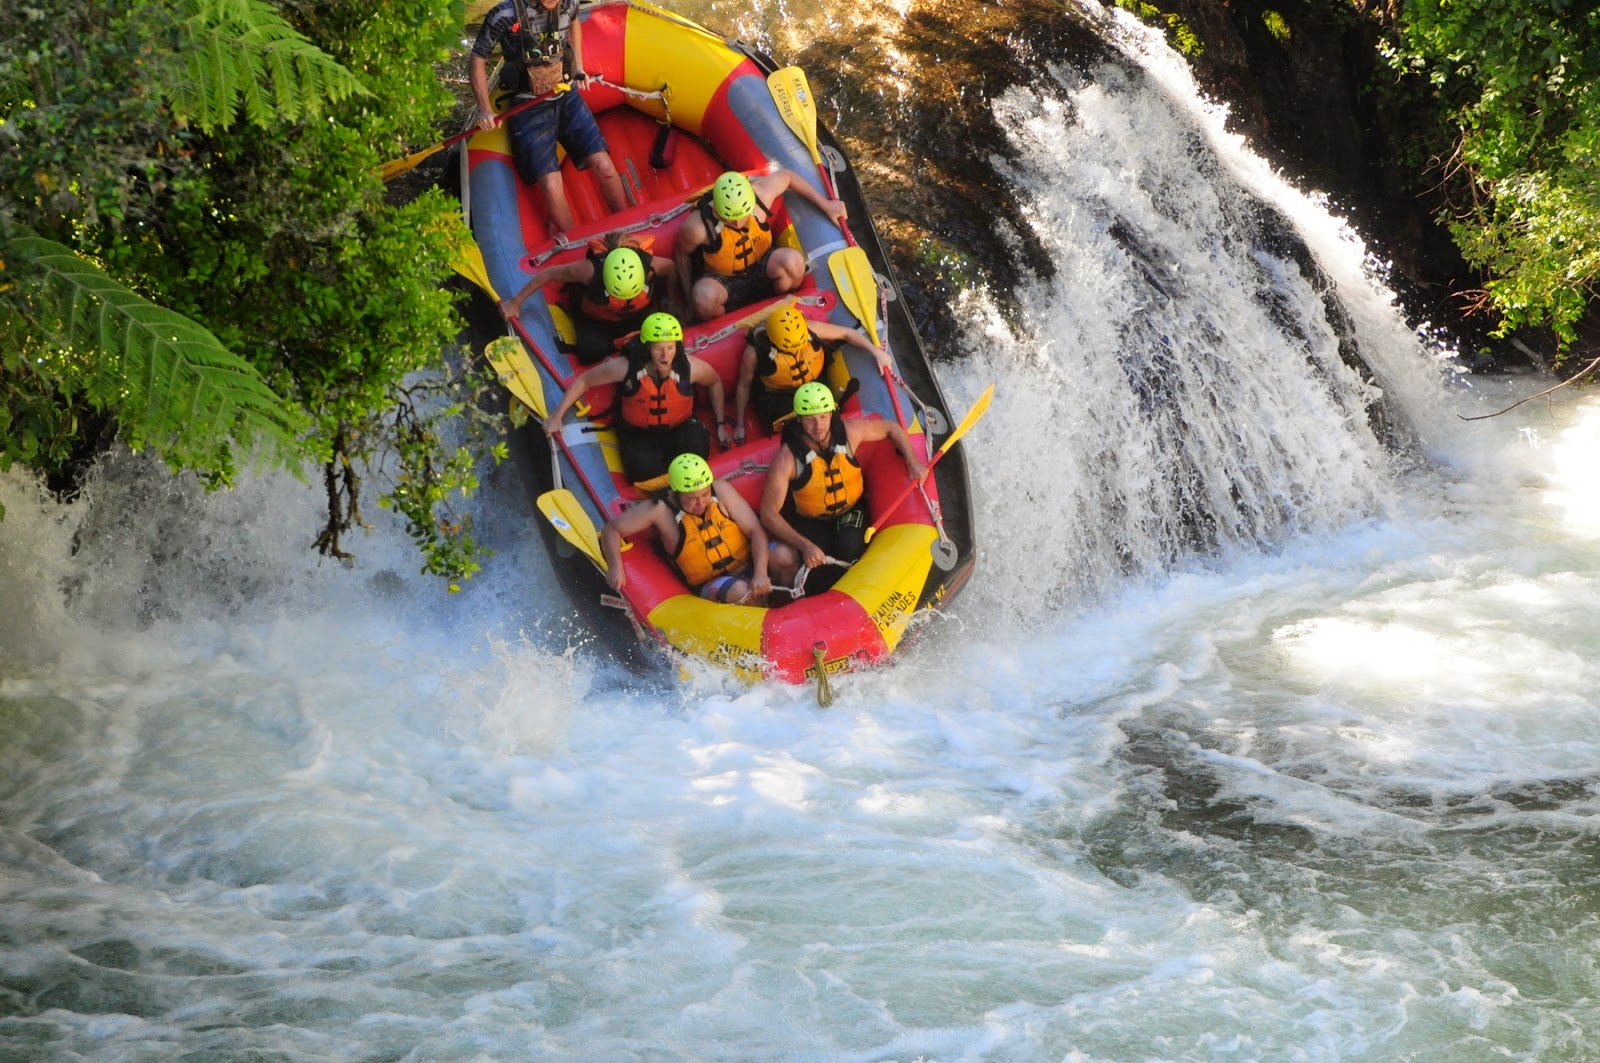 Overcoming the first waterfall - white water rafting in Rotorua, New Zealand